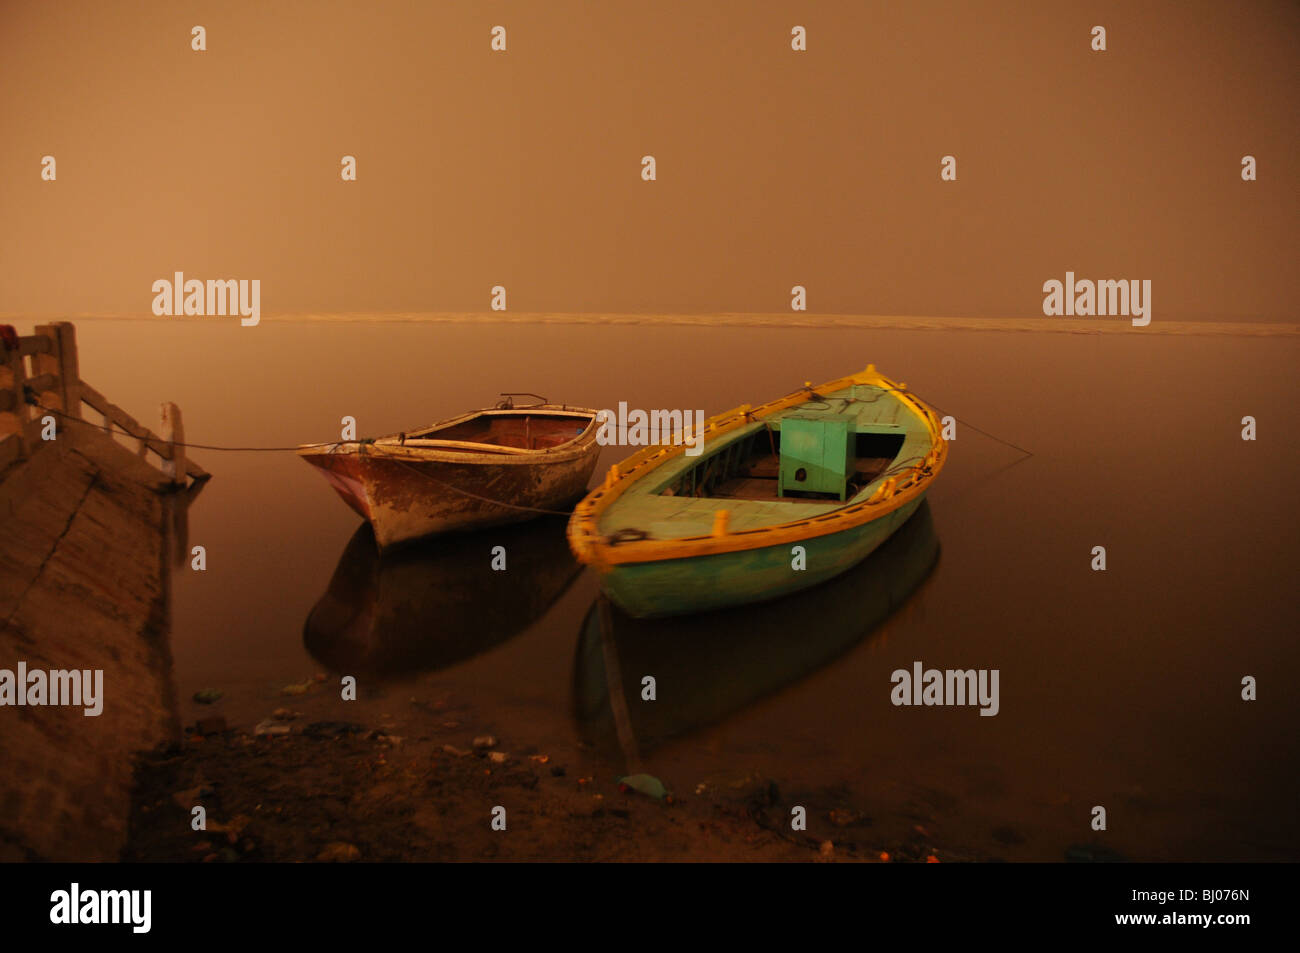 two boats float peacefully at the edge of the ganges river in varanasi, their reflections show the stillness of - Stock Image